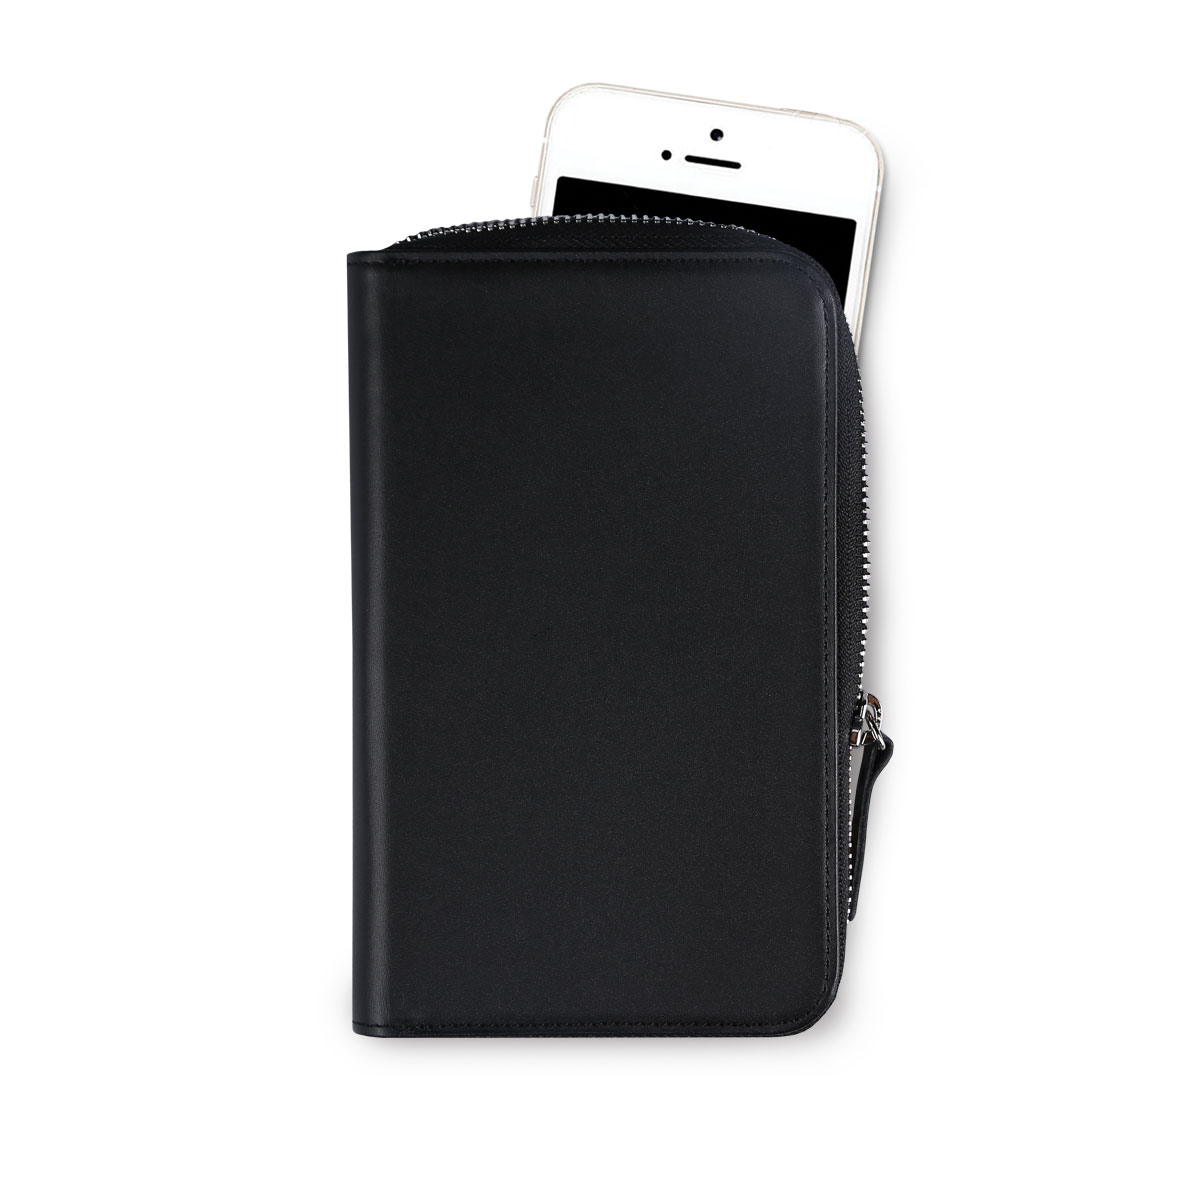 Daily Phone Pocket +_Black